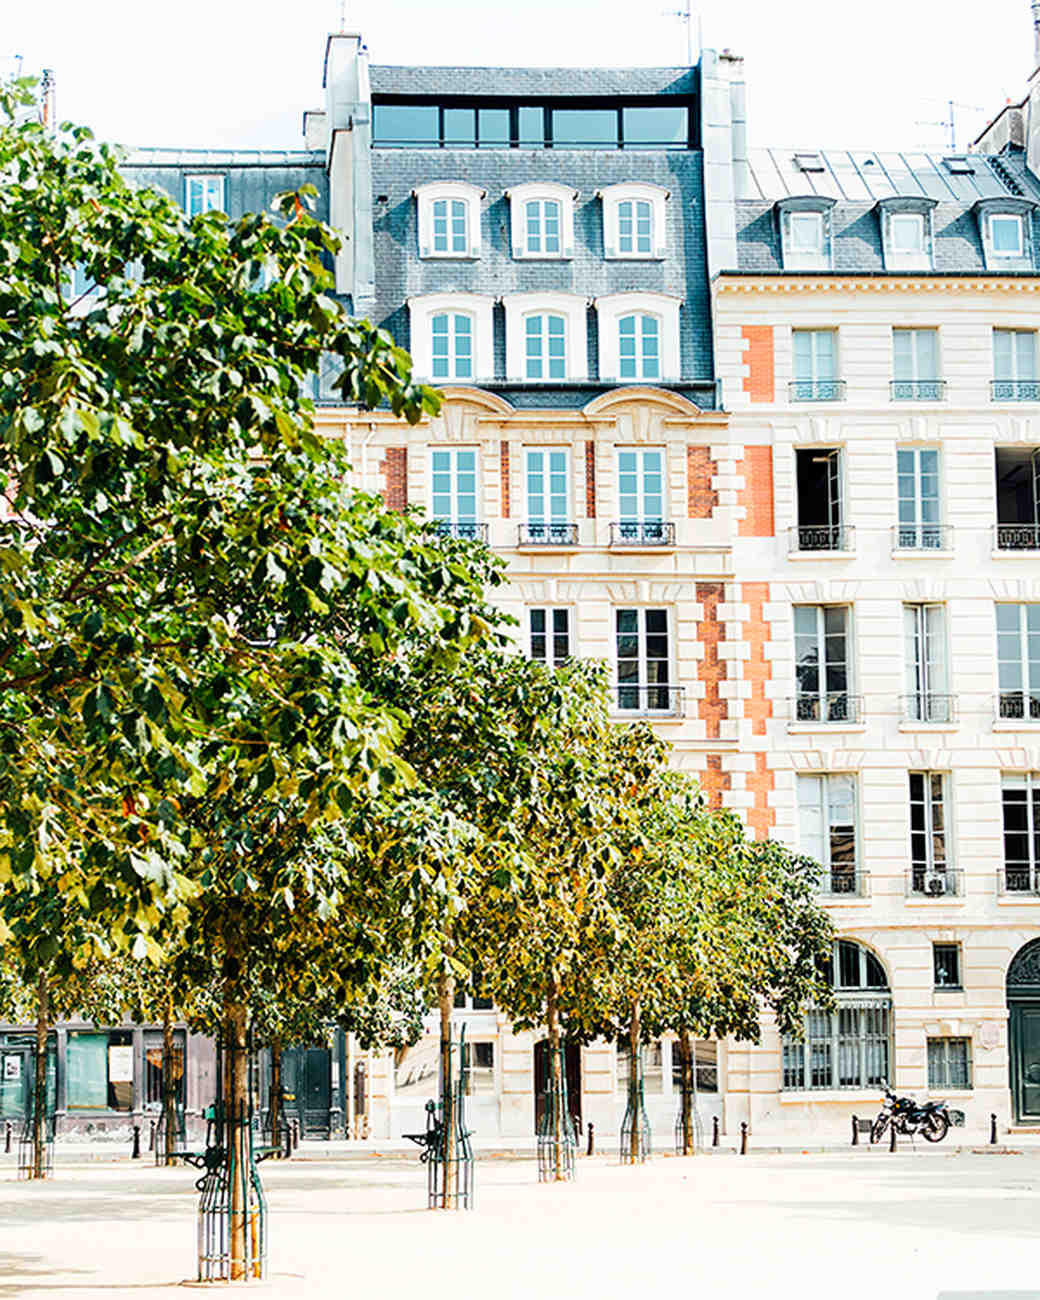 katie-mitchell-photography-where-to-propose-in-paris-place-dauphine-0815.jpg